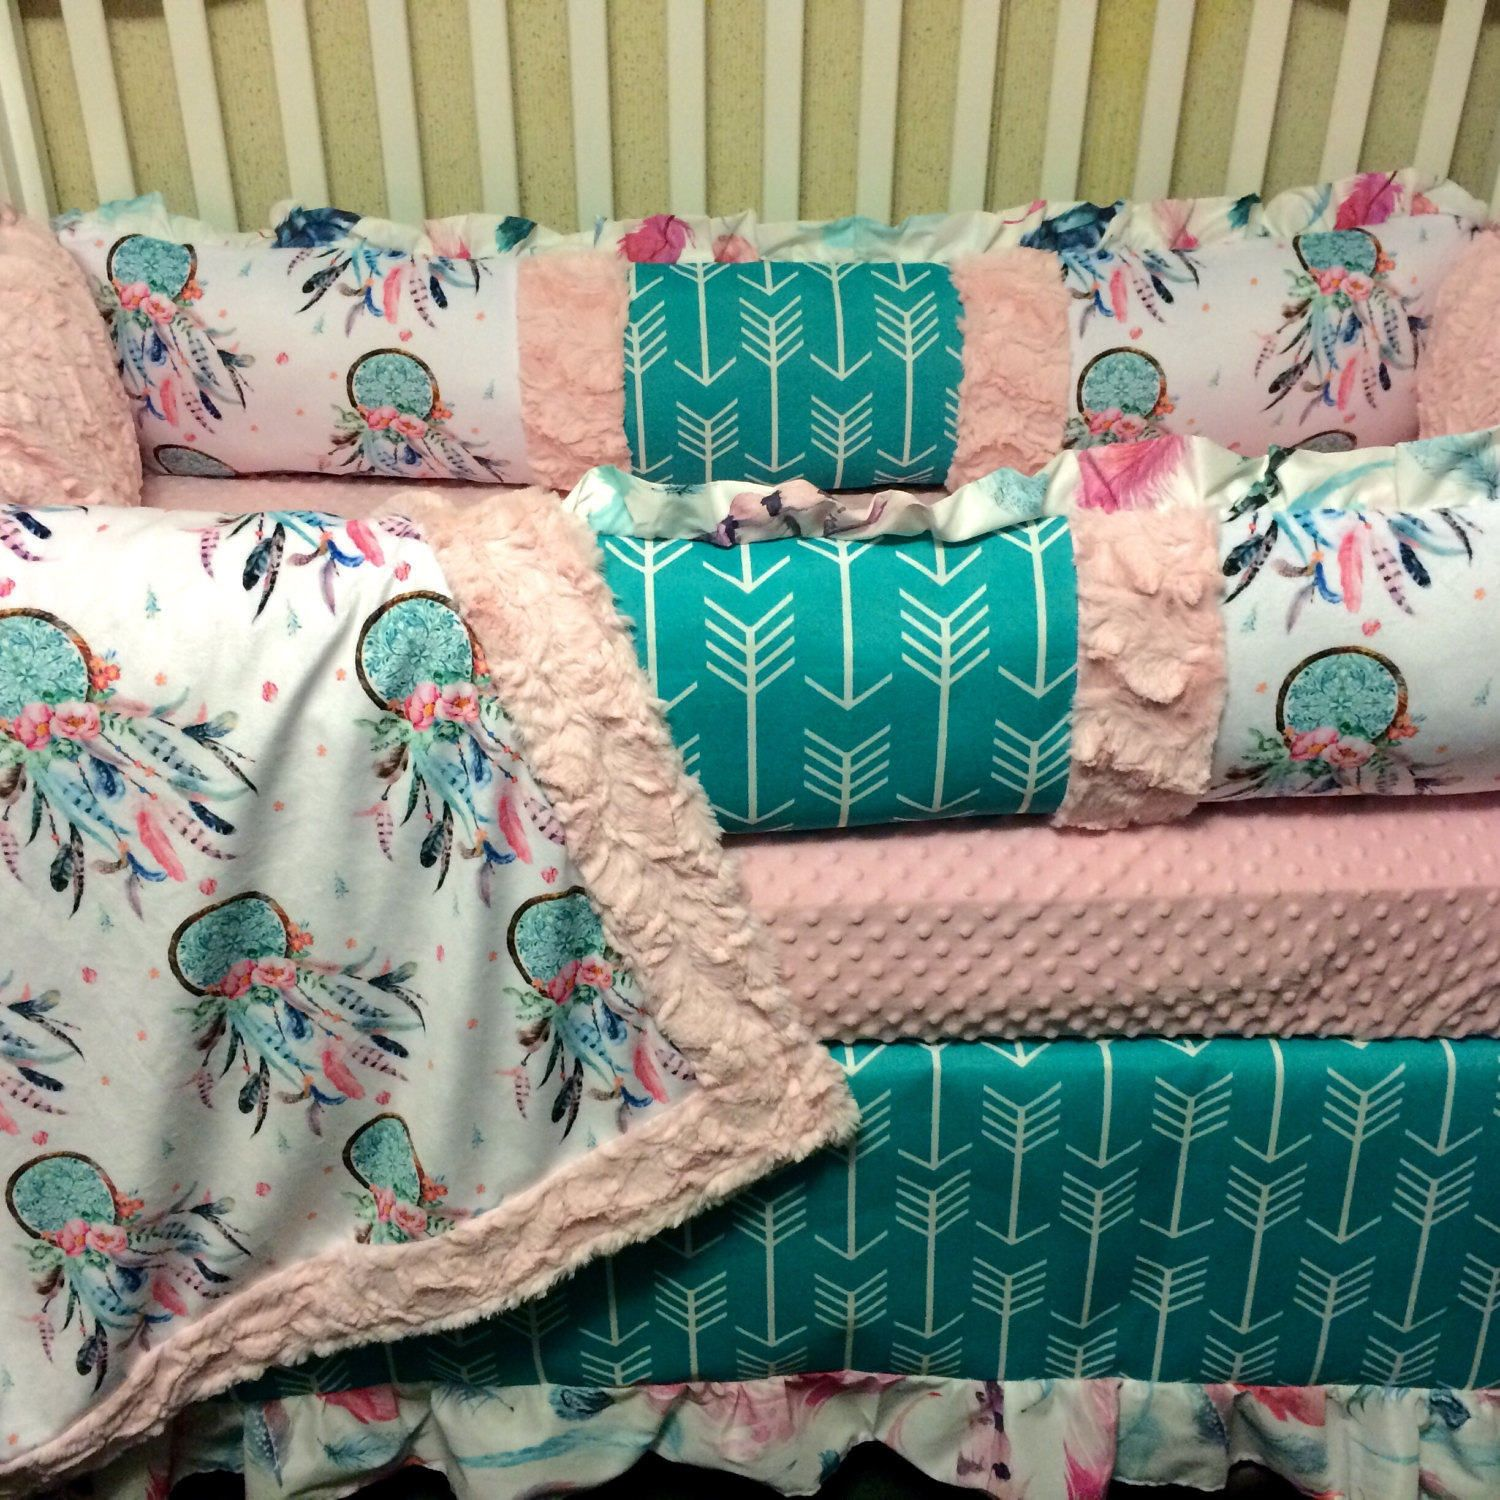 Dream Catcher Crib Bedding Unique Dream Catcher And Arrows Custom Baby Bedding With Pink And Teal Decorating Design